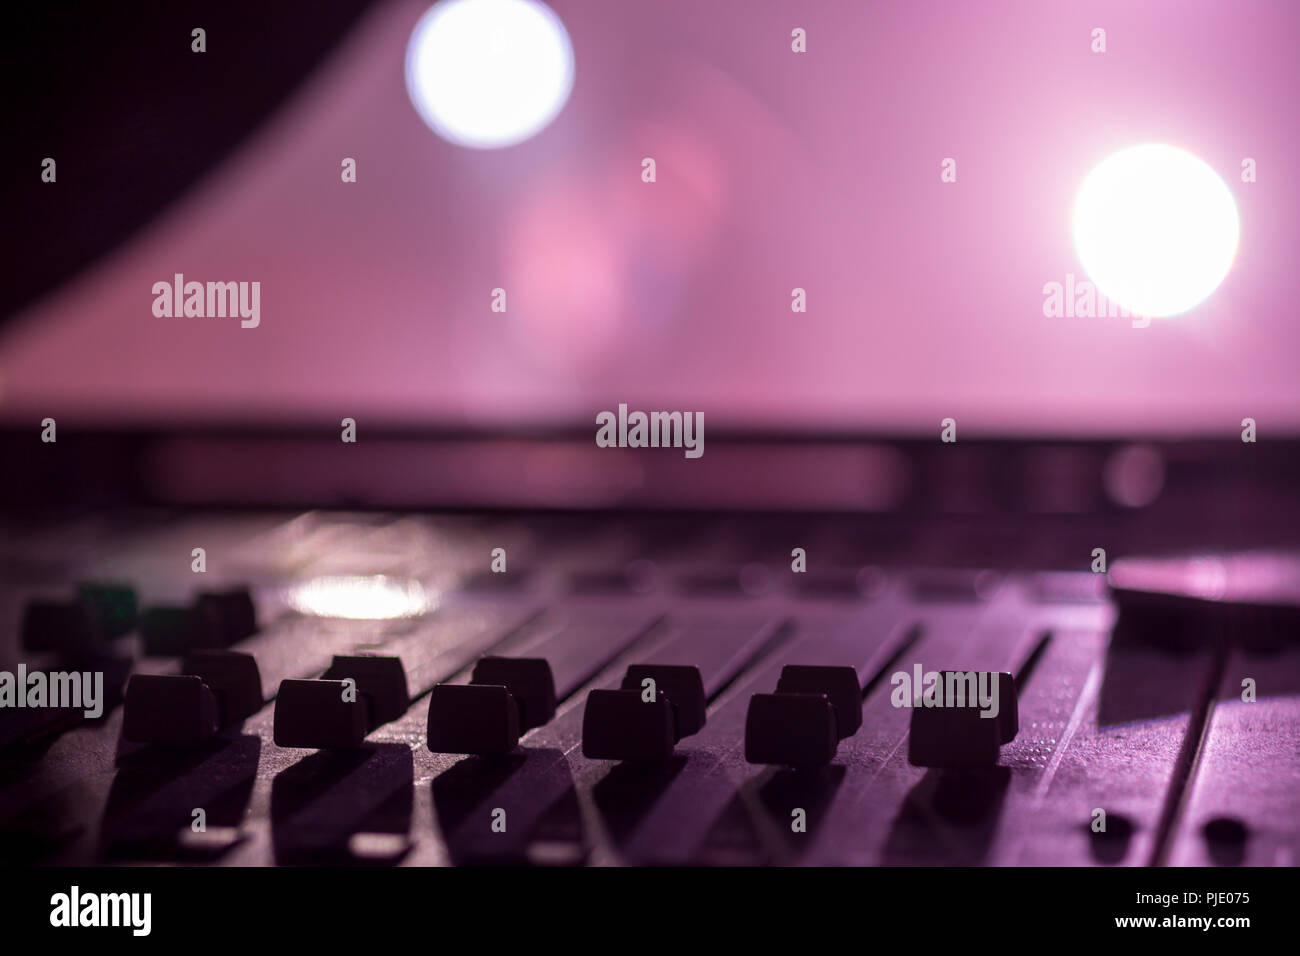 Stage side Low level view of Faders on a Professional Audio Sound Mixing Console at music festival, black Faders and pink purple background - Stock Image